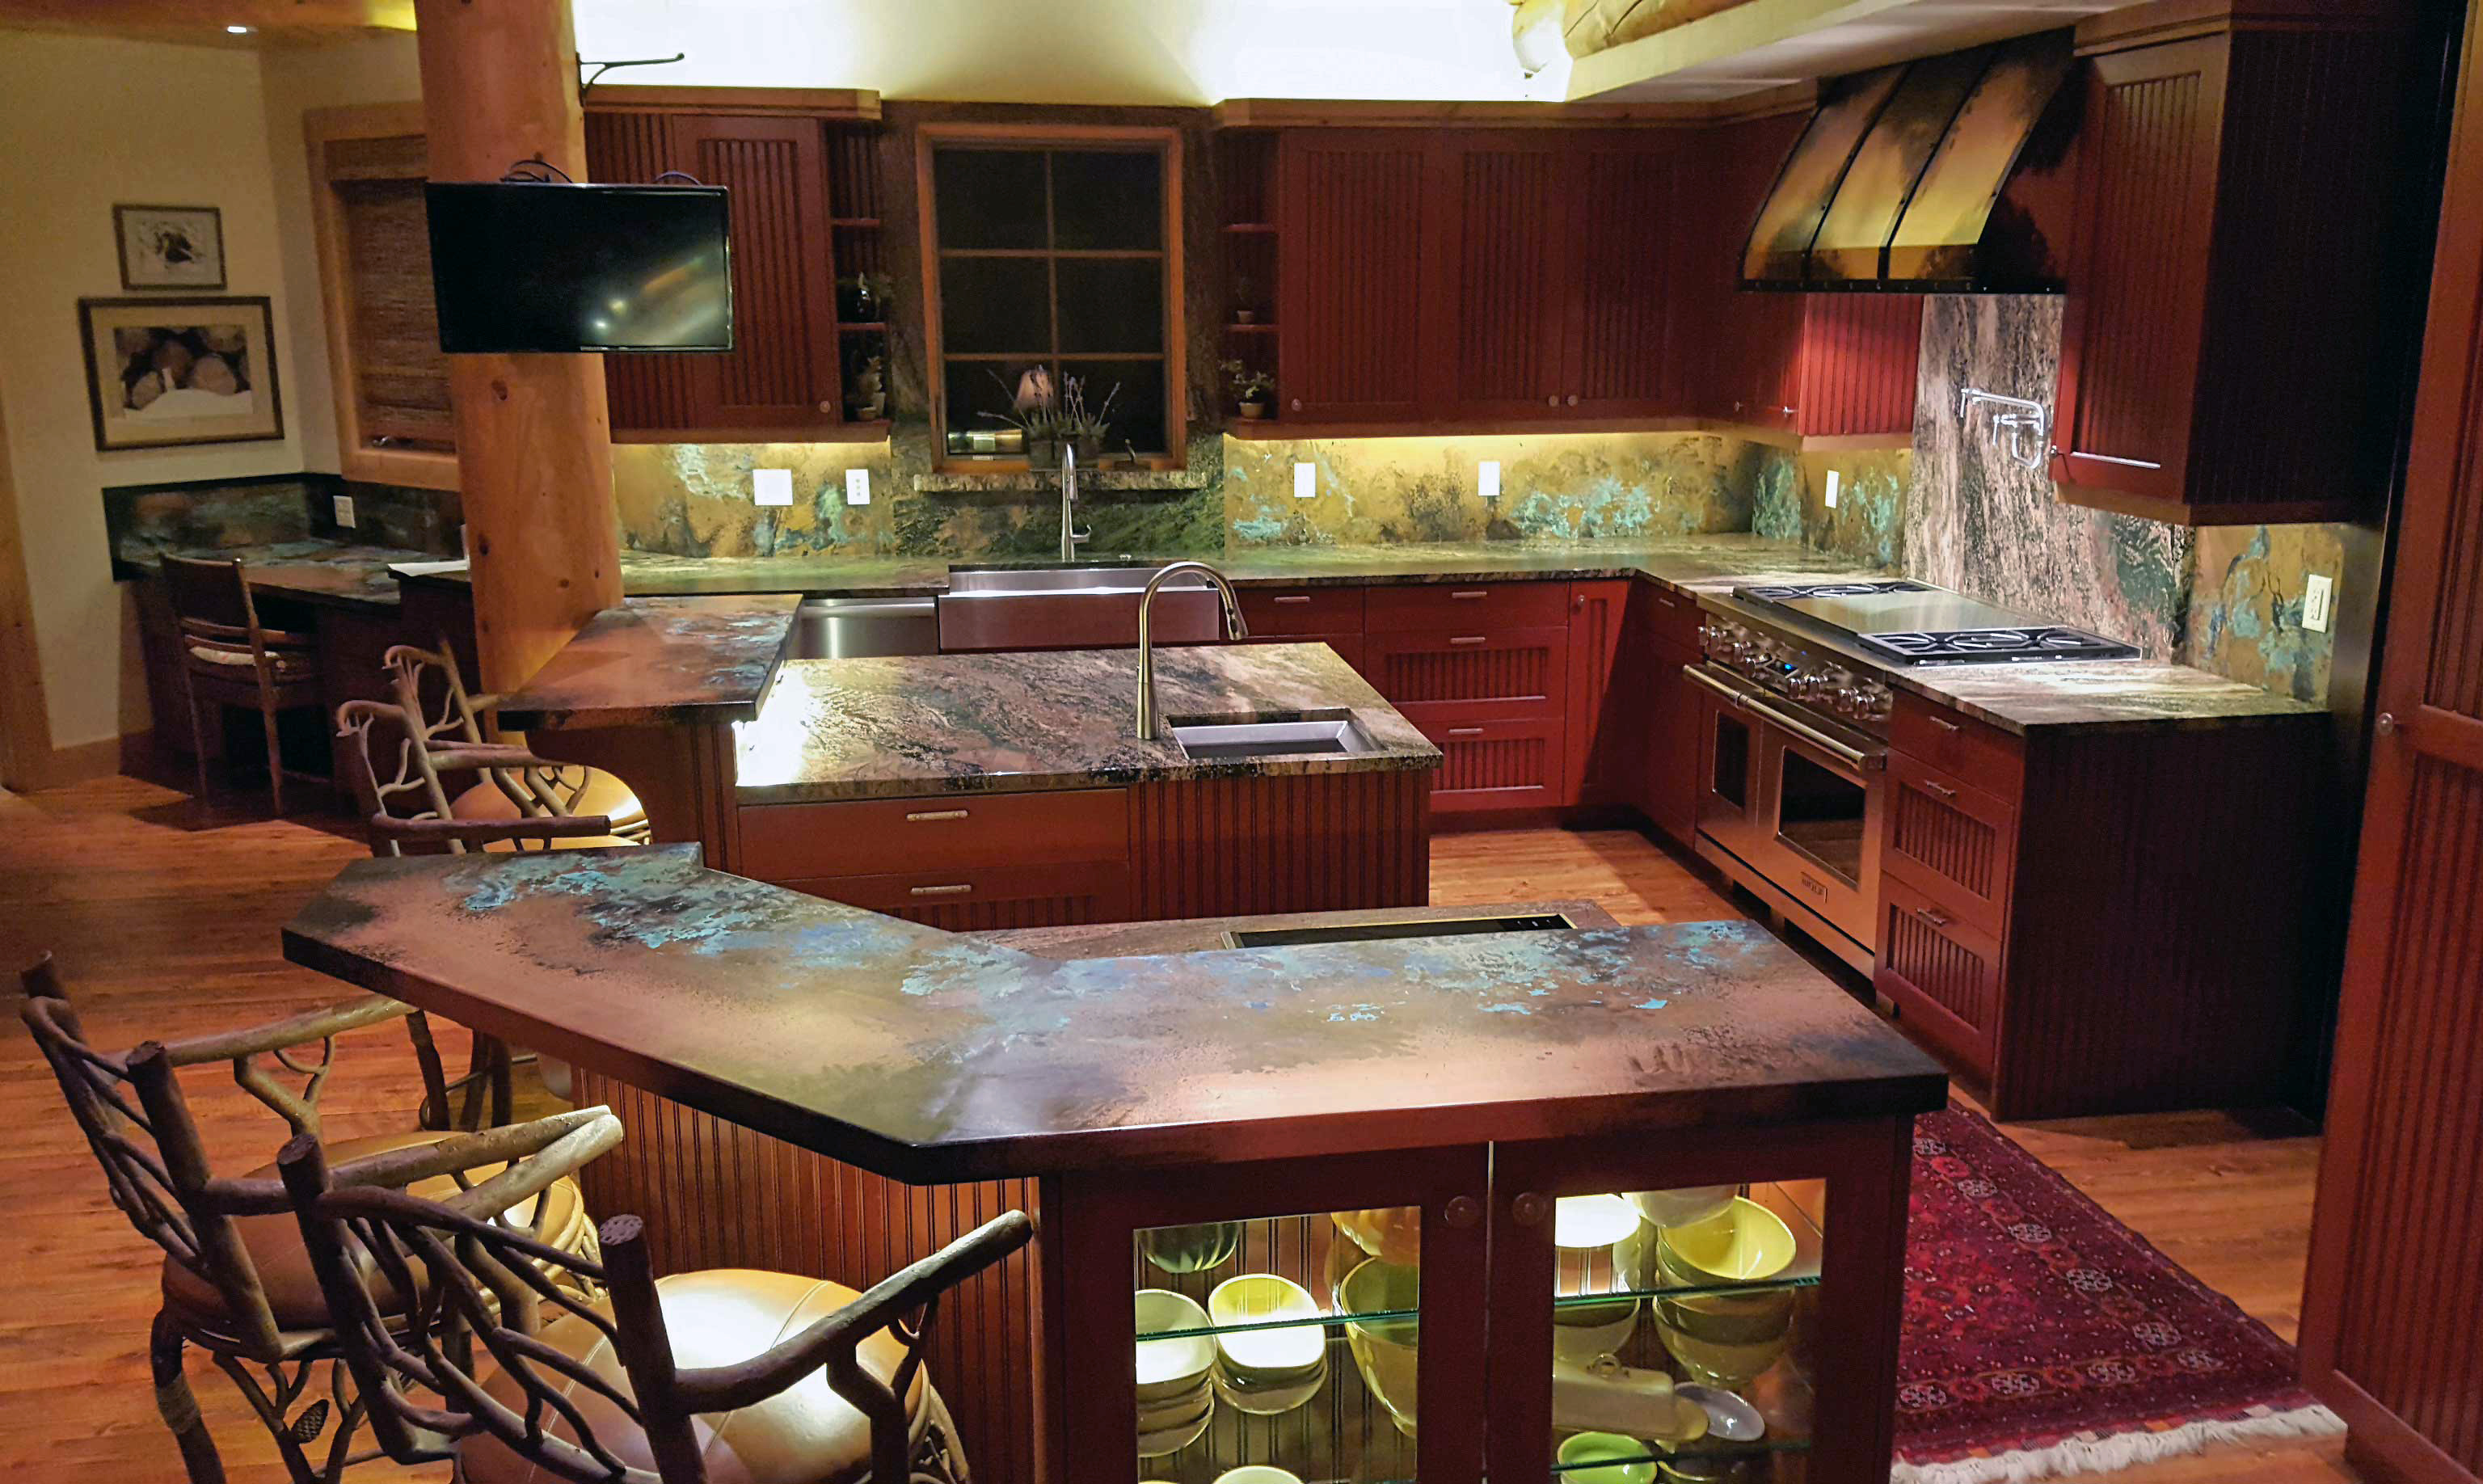 patinad copper counters